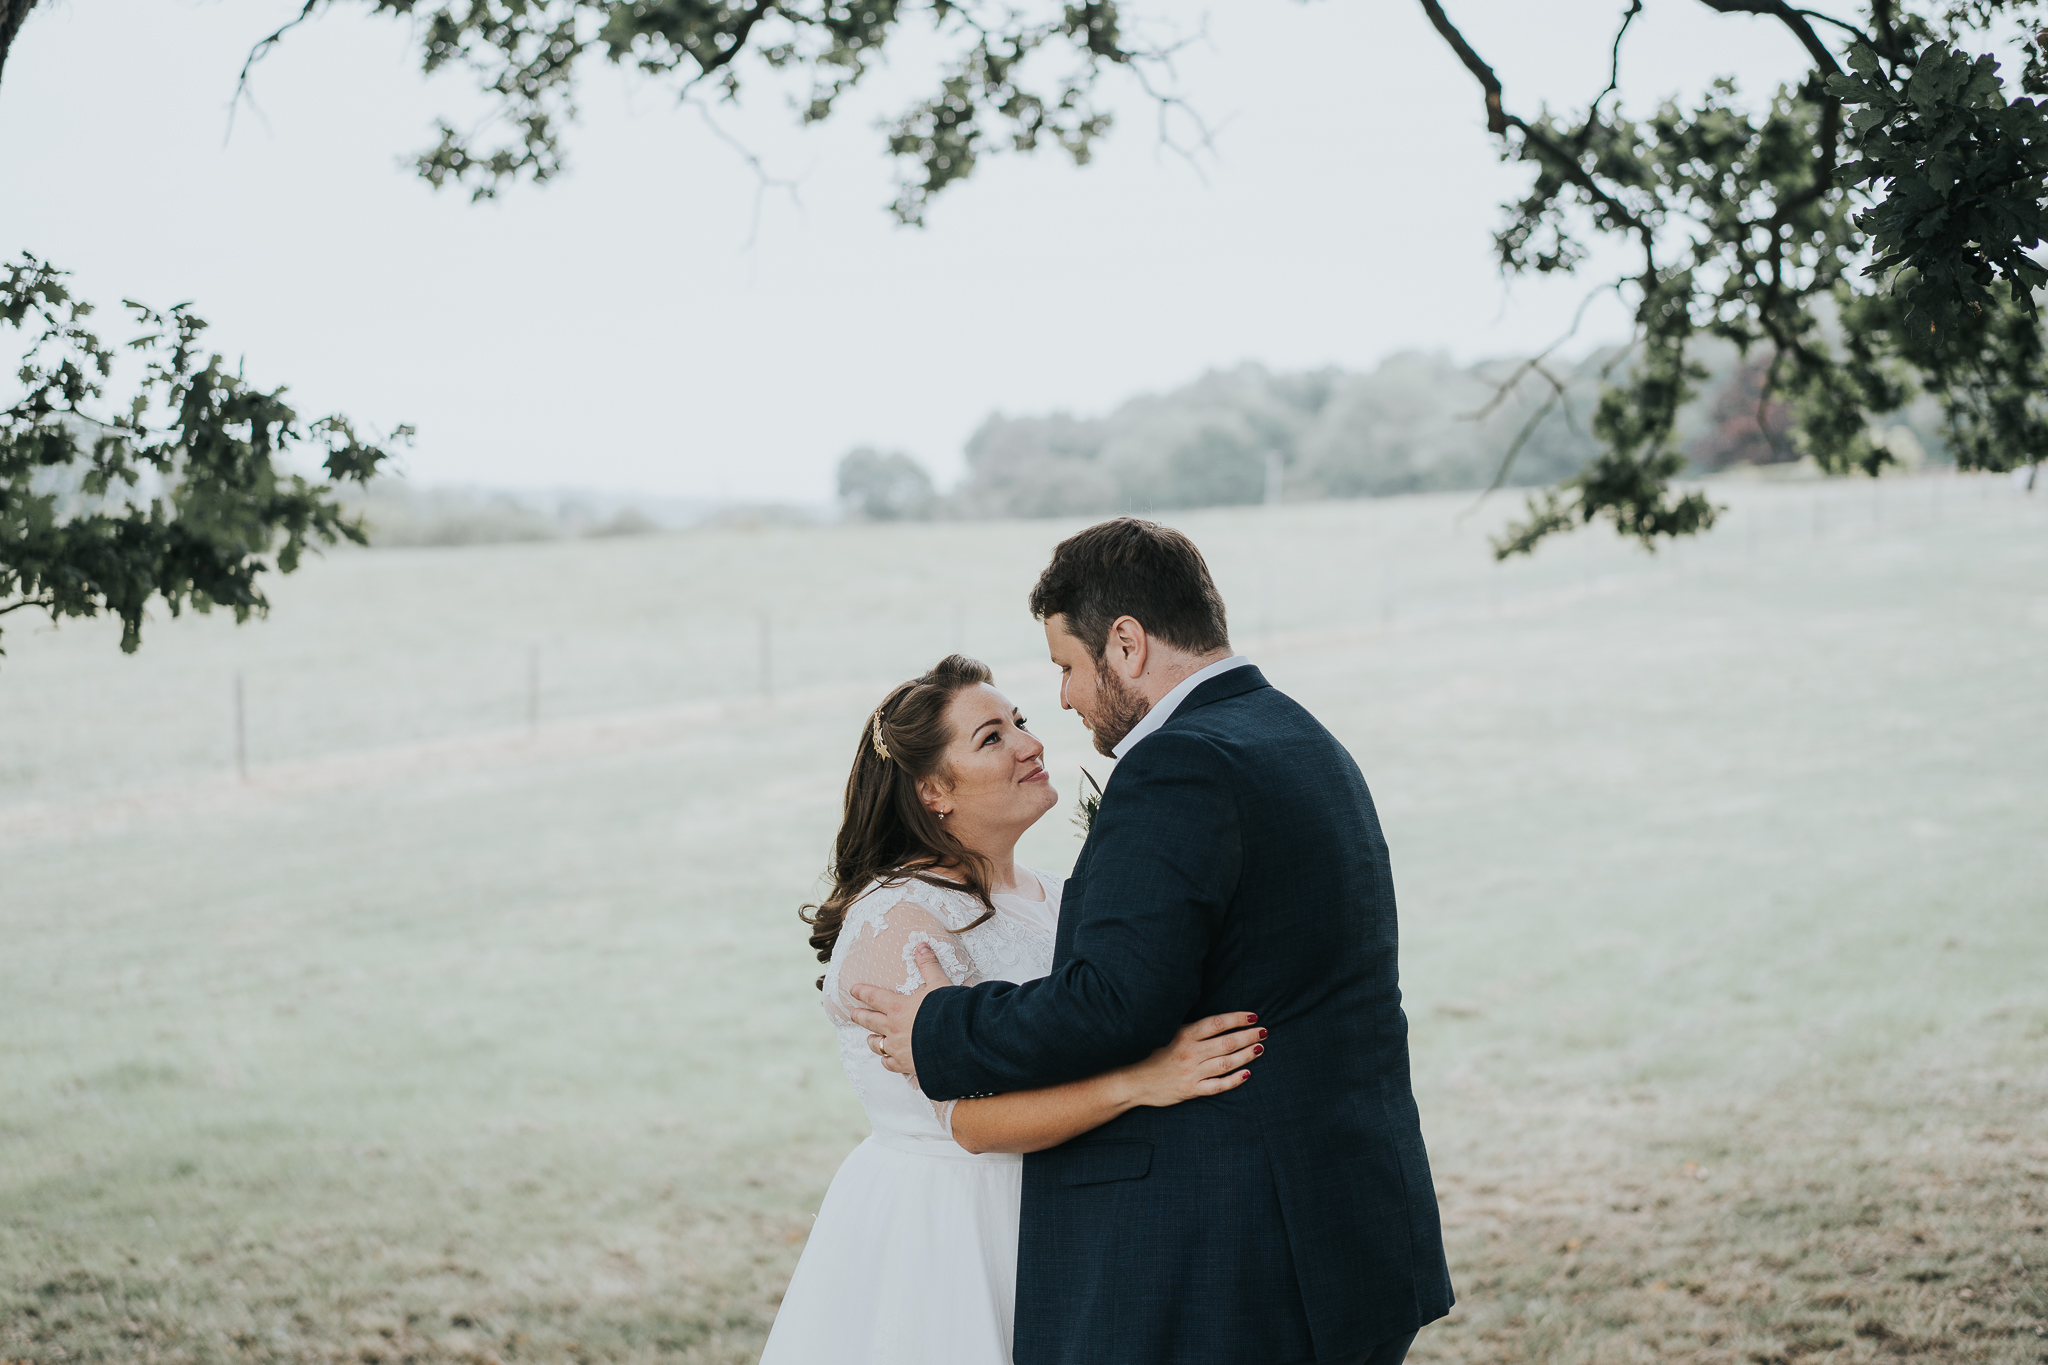 At Steph + Tony's wedding we made use of some trees and took advantage of the beautiful soft light the rain created